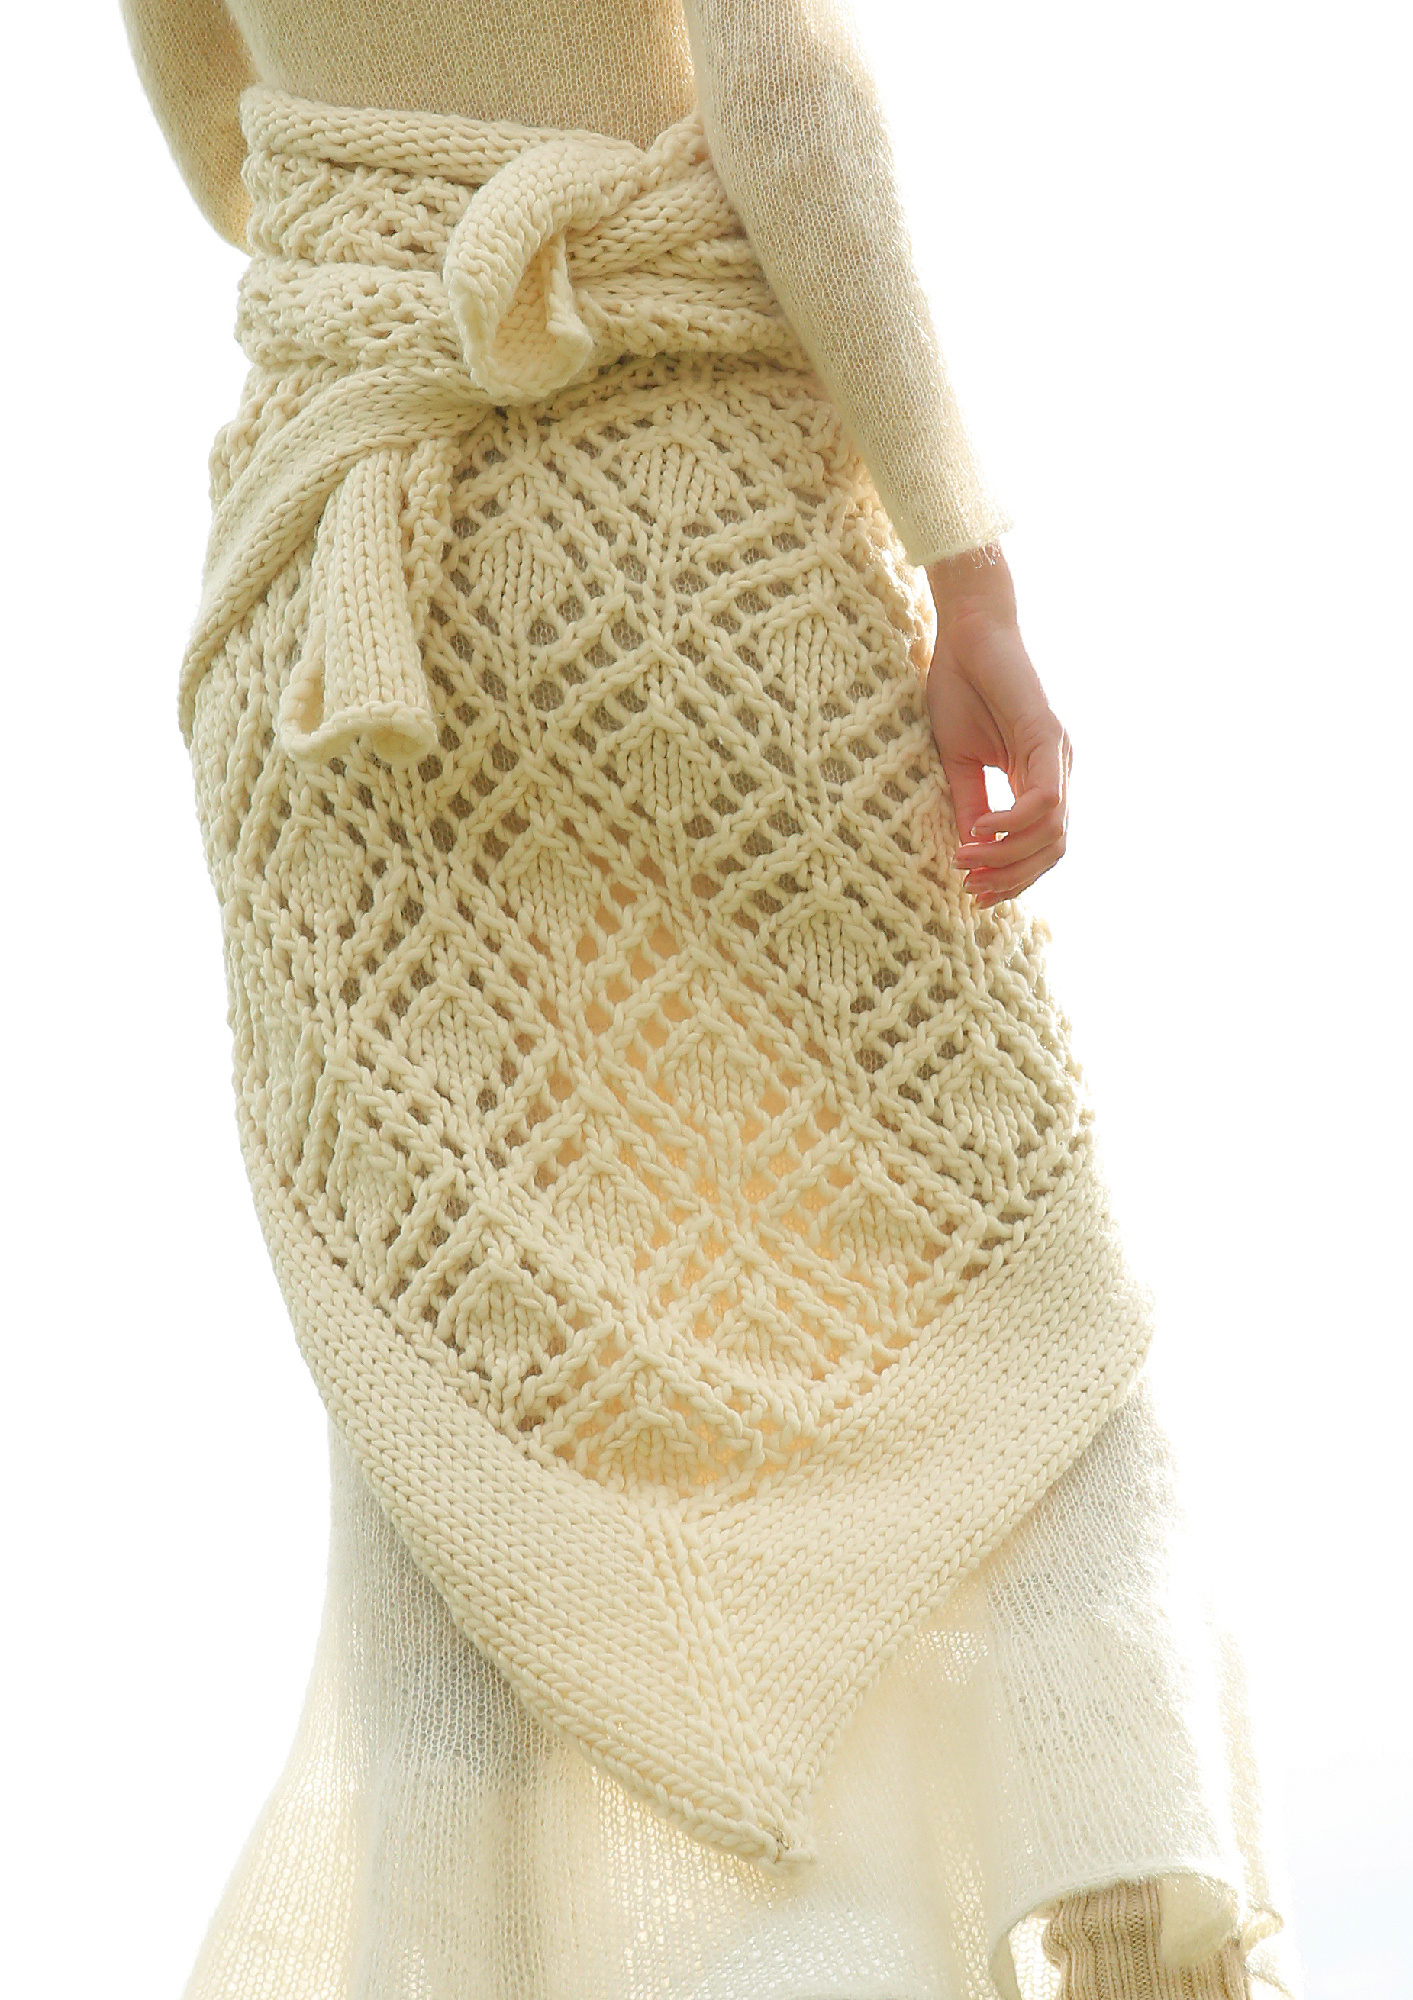 85b21a353126 ... Preview  Triangular shawl with peep-hole pattern ...